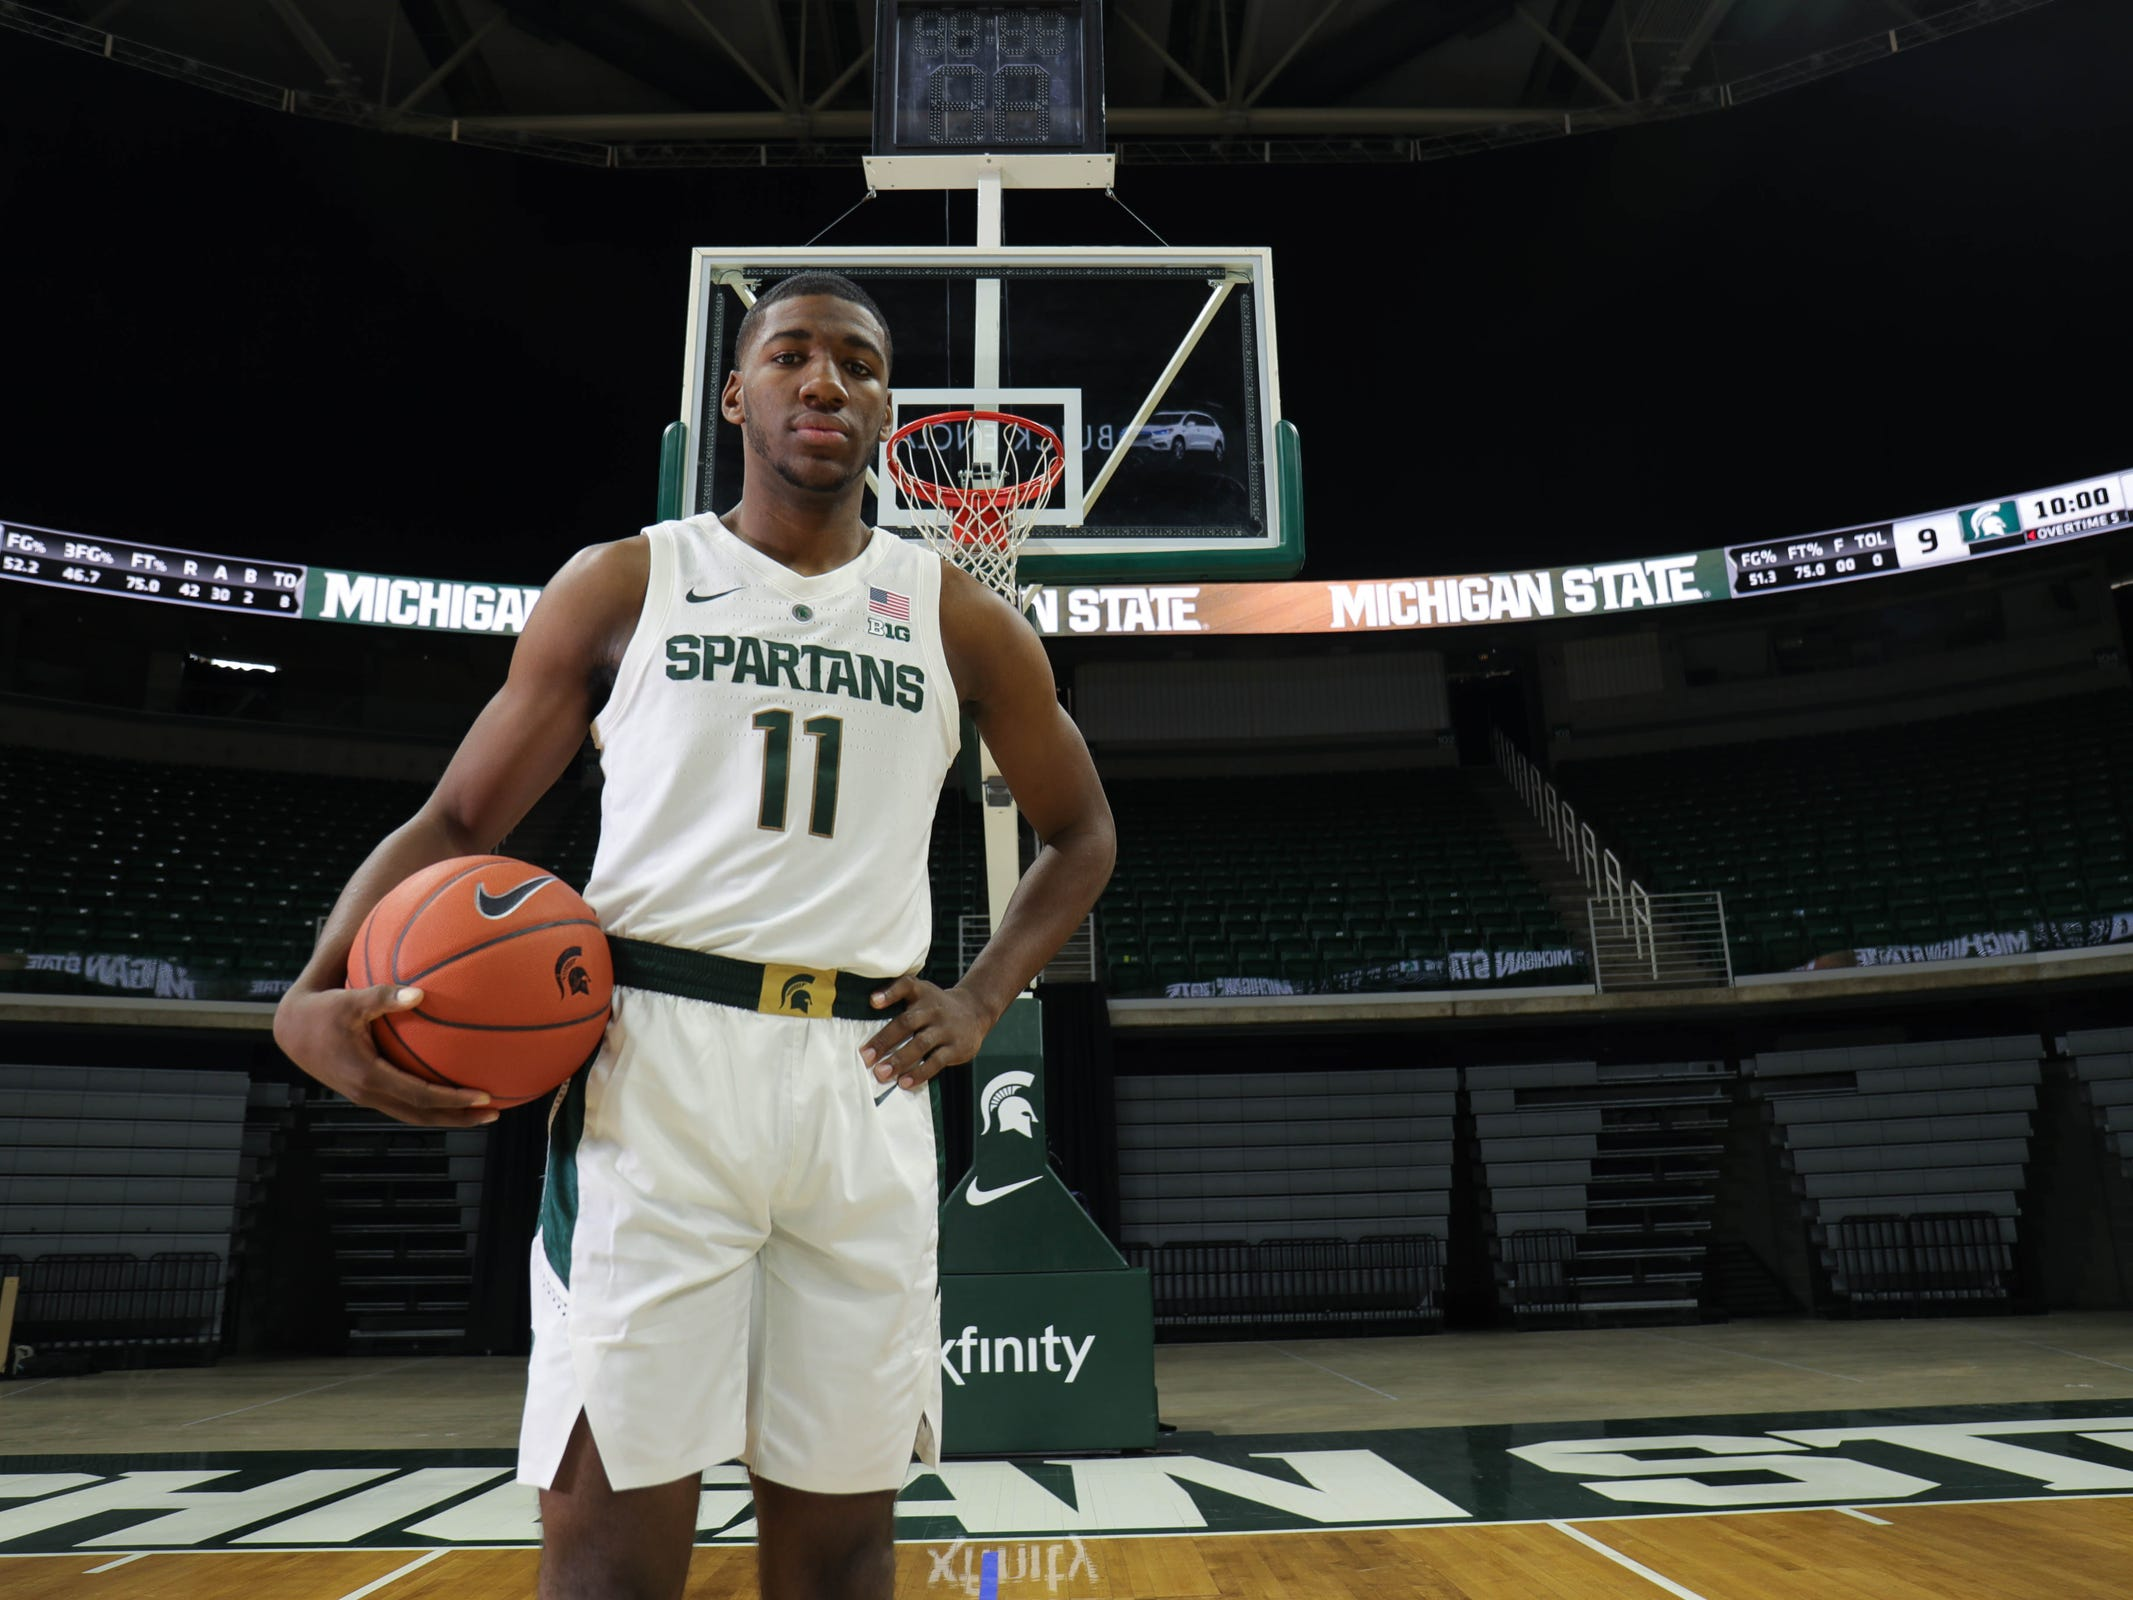 Michigan State's Aaron Henry at media day Thursday, Oct. 25, 2018 at Breslin Center in East Lansing.